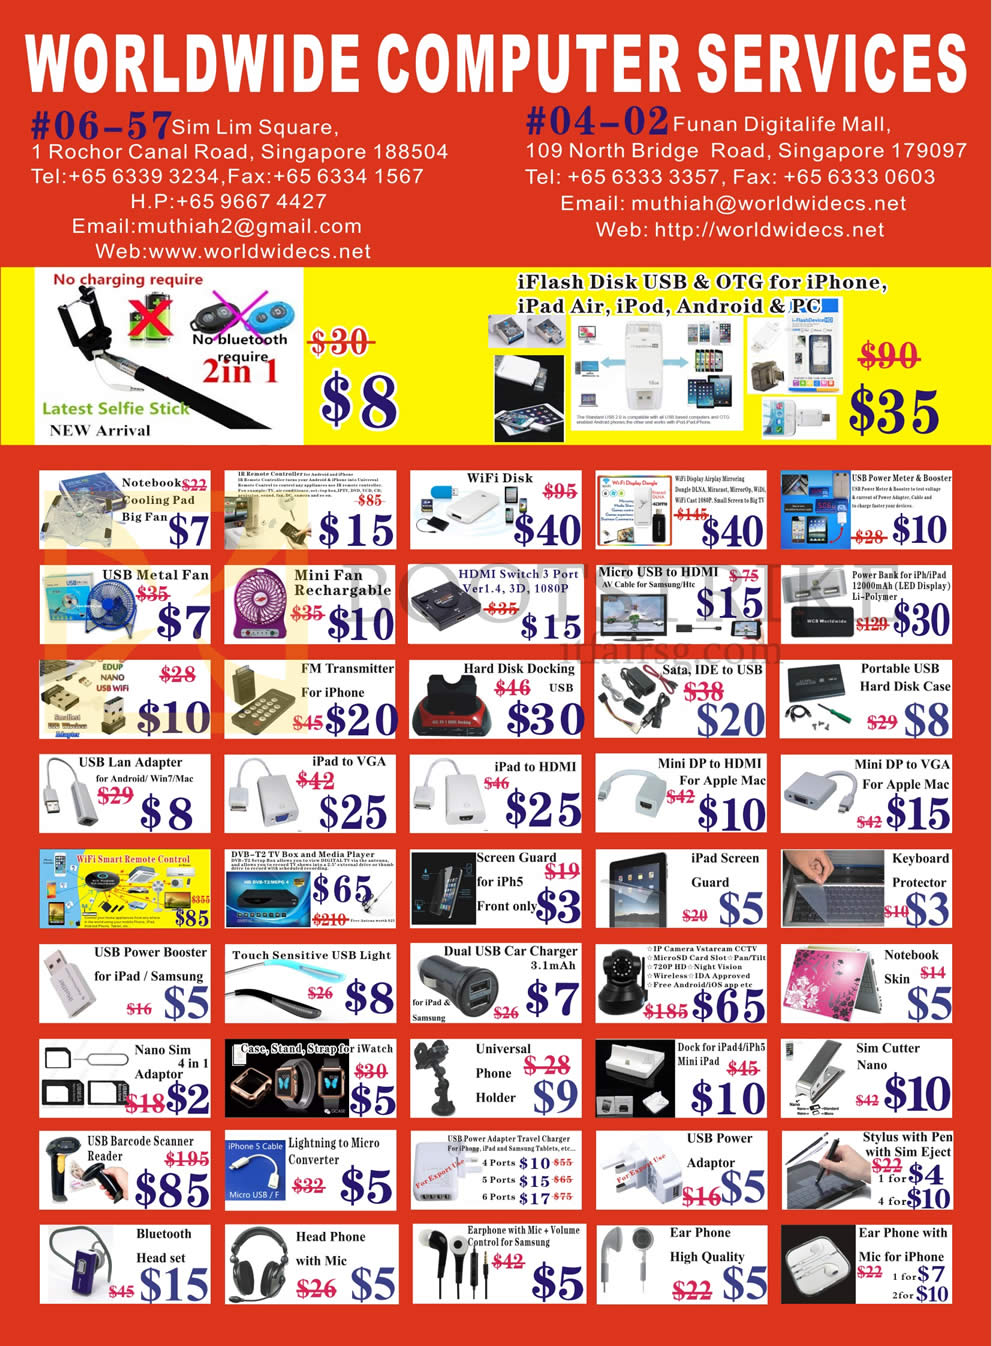 SITEX 2015 price list image brochure of Worldwide Computer Services Accessories Cooling Fan, Wifi Disk, FM Transmitter, Hard Disk Docking, Mini DP, Cables, Media Player, Notebook Skin, USB Power Adaptor